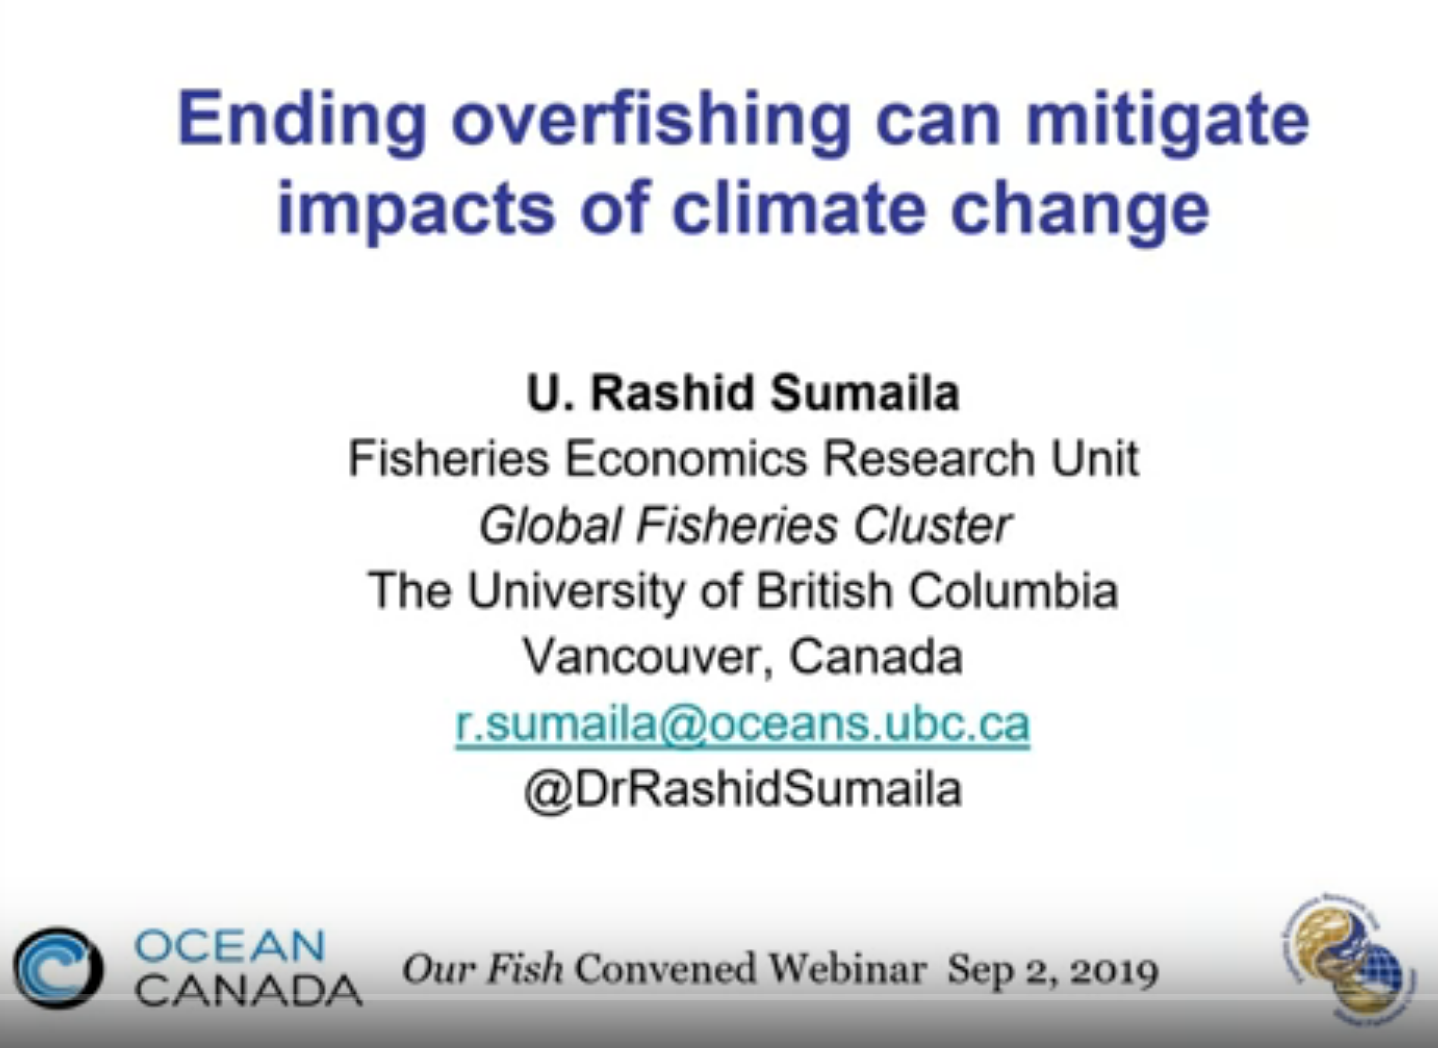 Ending Overfishing Is Opportunity to Combat Climate Crisis